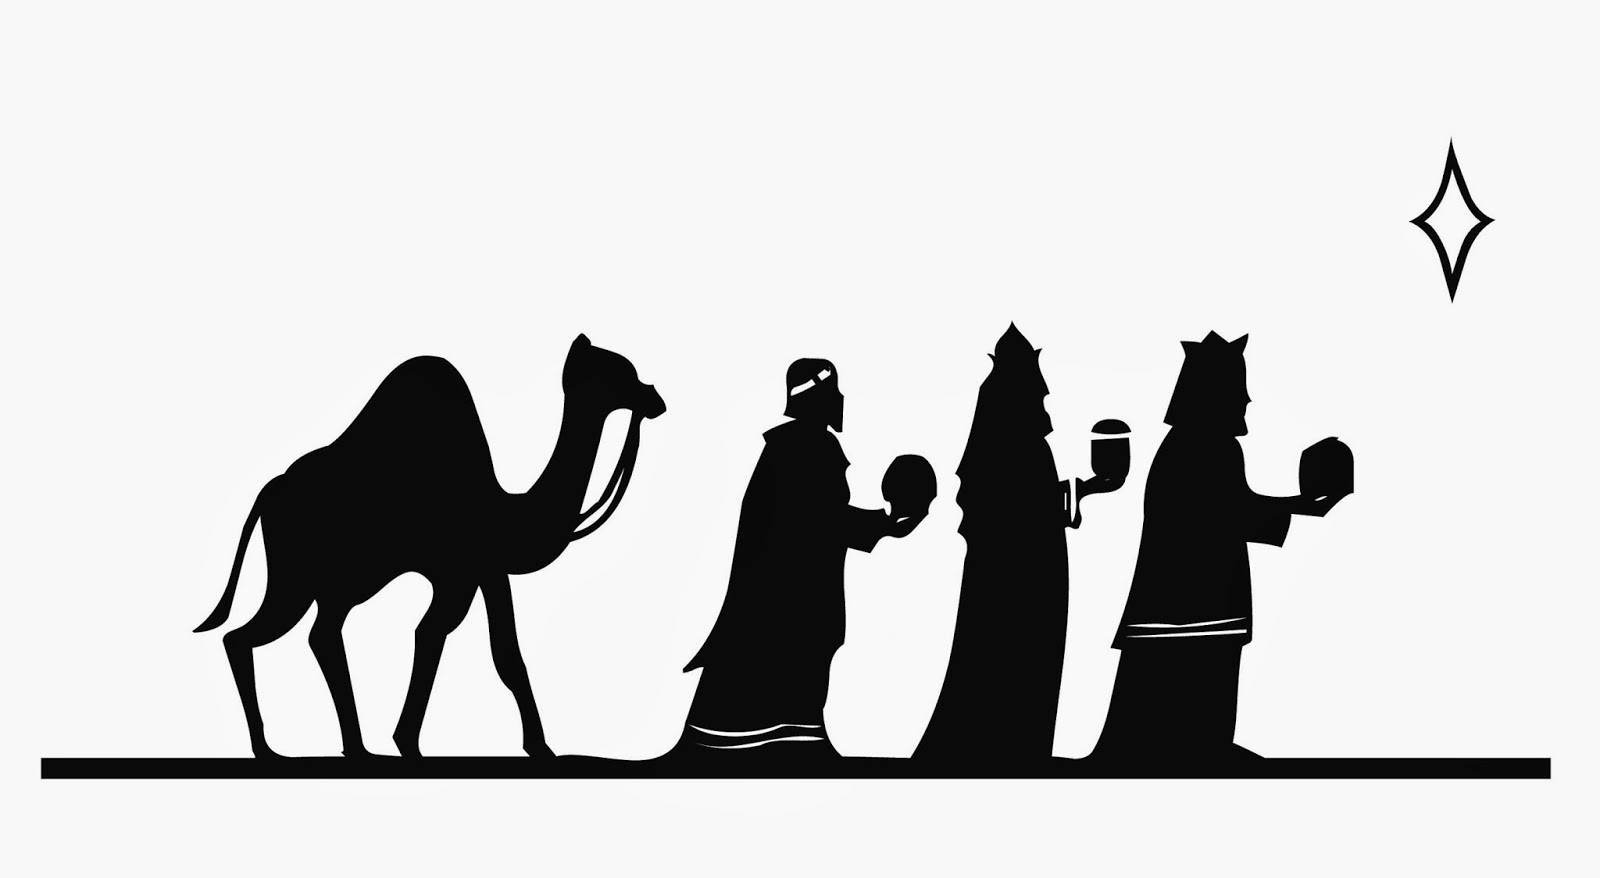 1600x878 Christmas Gift Giving With Purpose Silhouettes Cricut